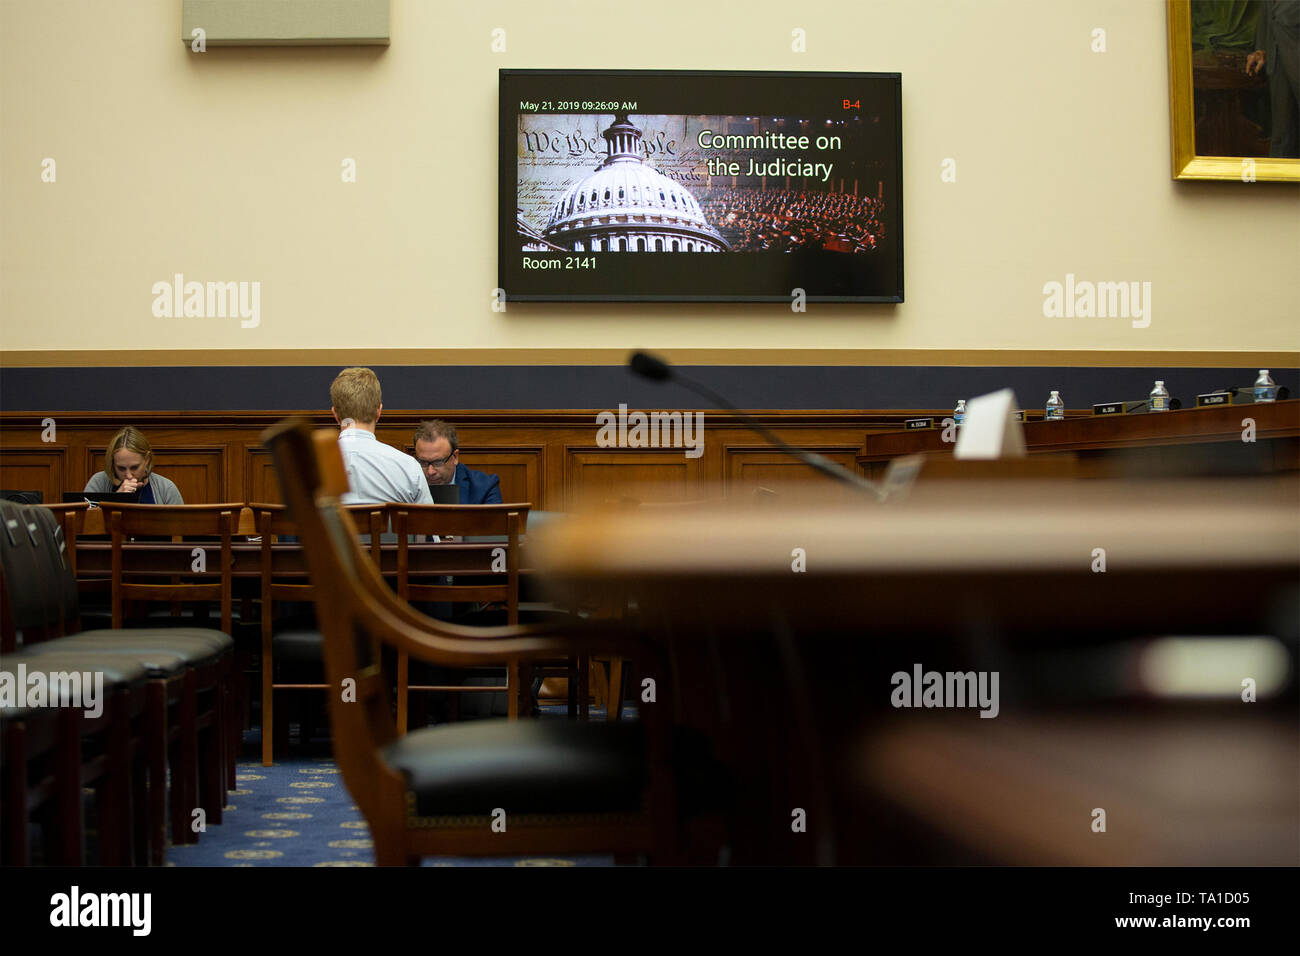 An empty chair meant for Former Counsel to the President Don McGahn sits in the House Judiciary Committee hearing room on Capitol Hill in Washington, DC on Tuesday, May 21, 2019. McGahn defied a subpoena from the House Judiciary Committee, which pushed Committee chairman, United States Representative Jerrold Nadler (Democrat of New York), to state that the committee would charge him with contempt. Credit: Stefani Reynolds/CNP | usage worldwide - Stock Image